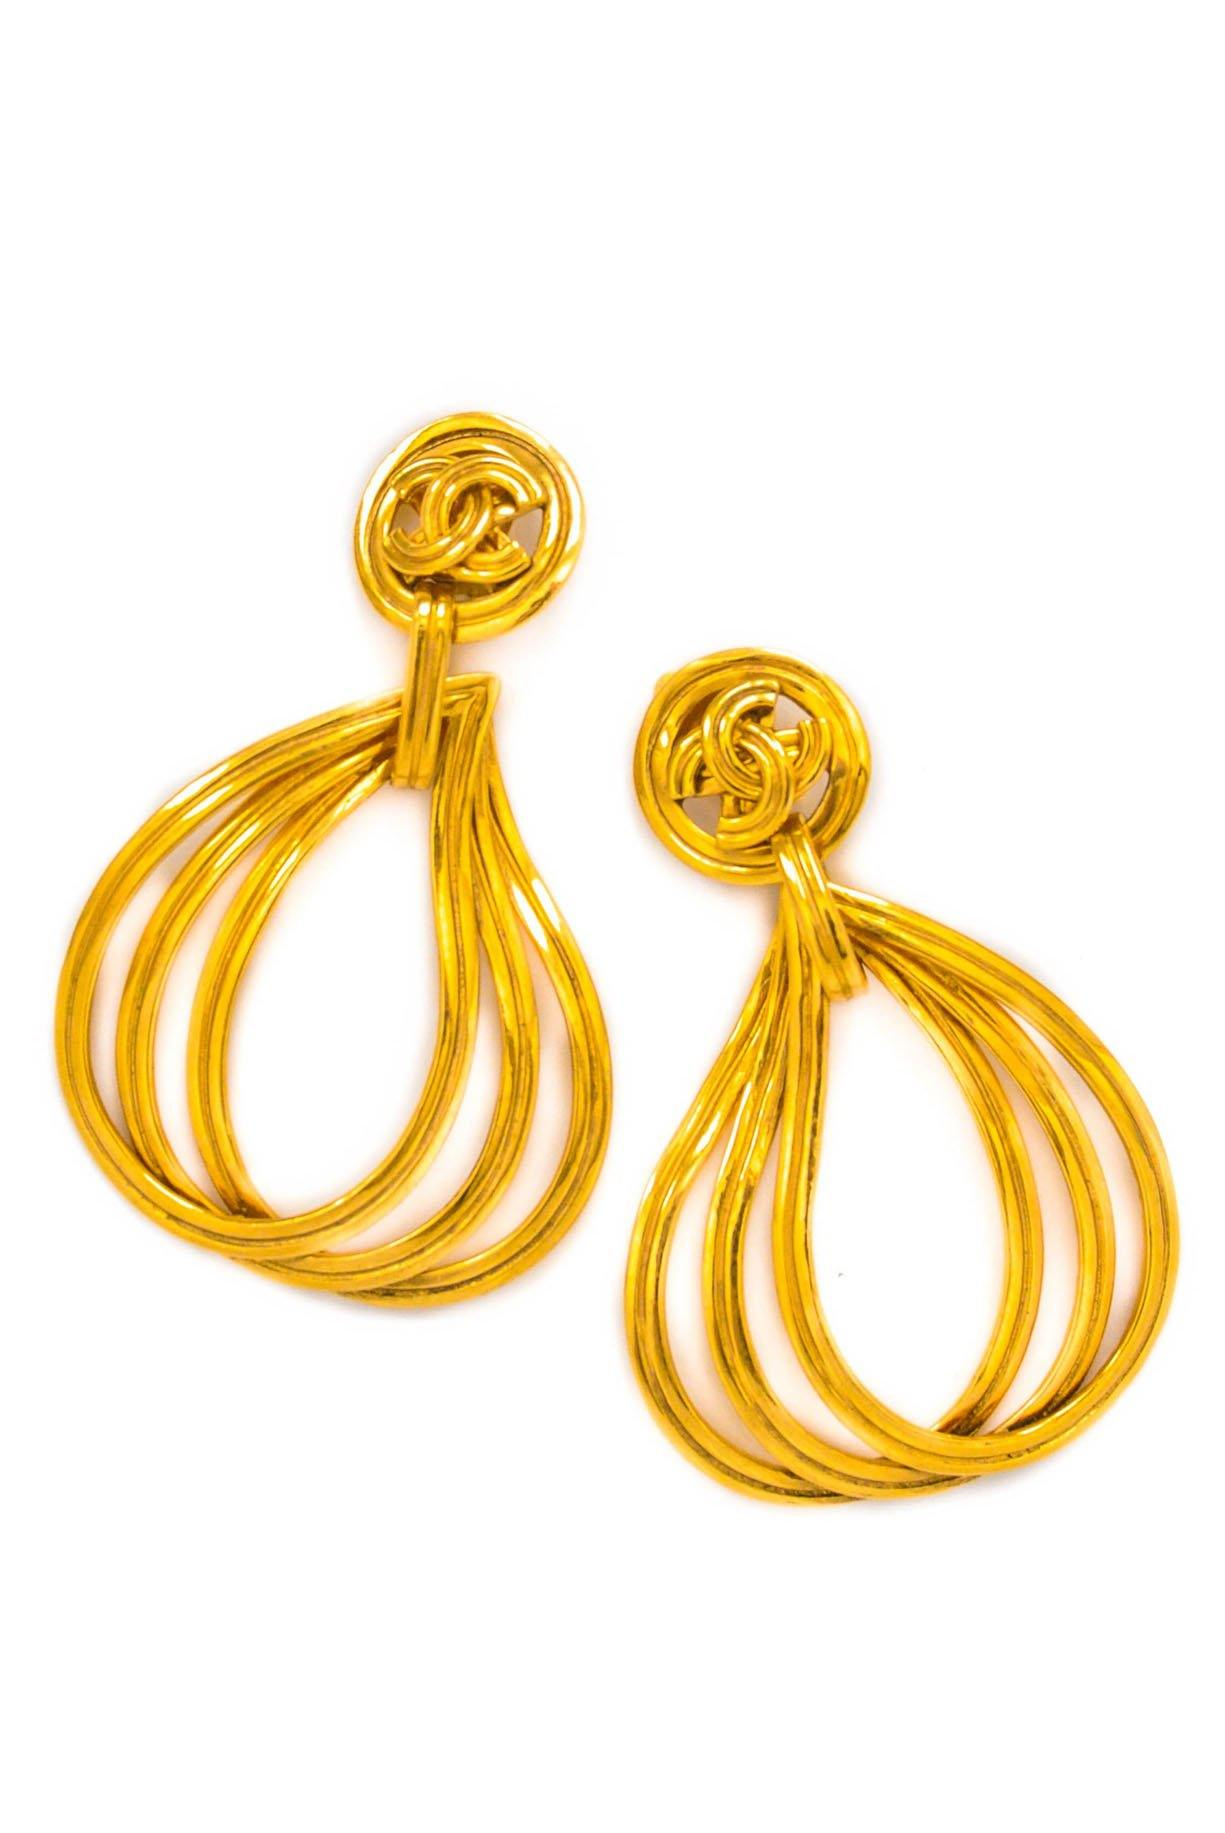 Vintage Chanel CC Teardrop Hoop Earrings from Sweet and Spark